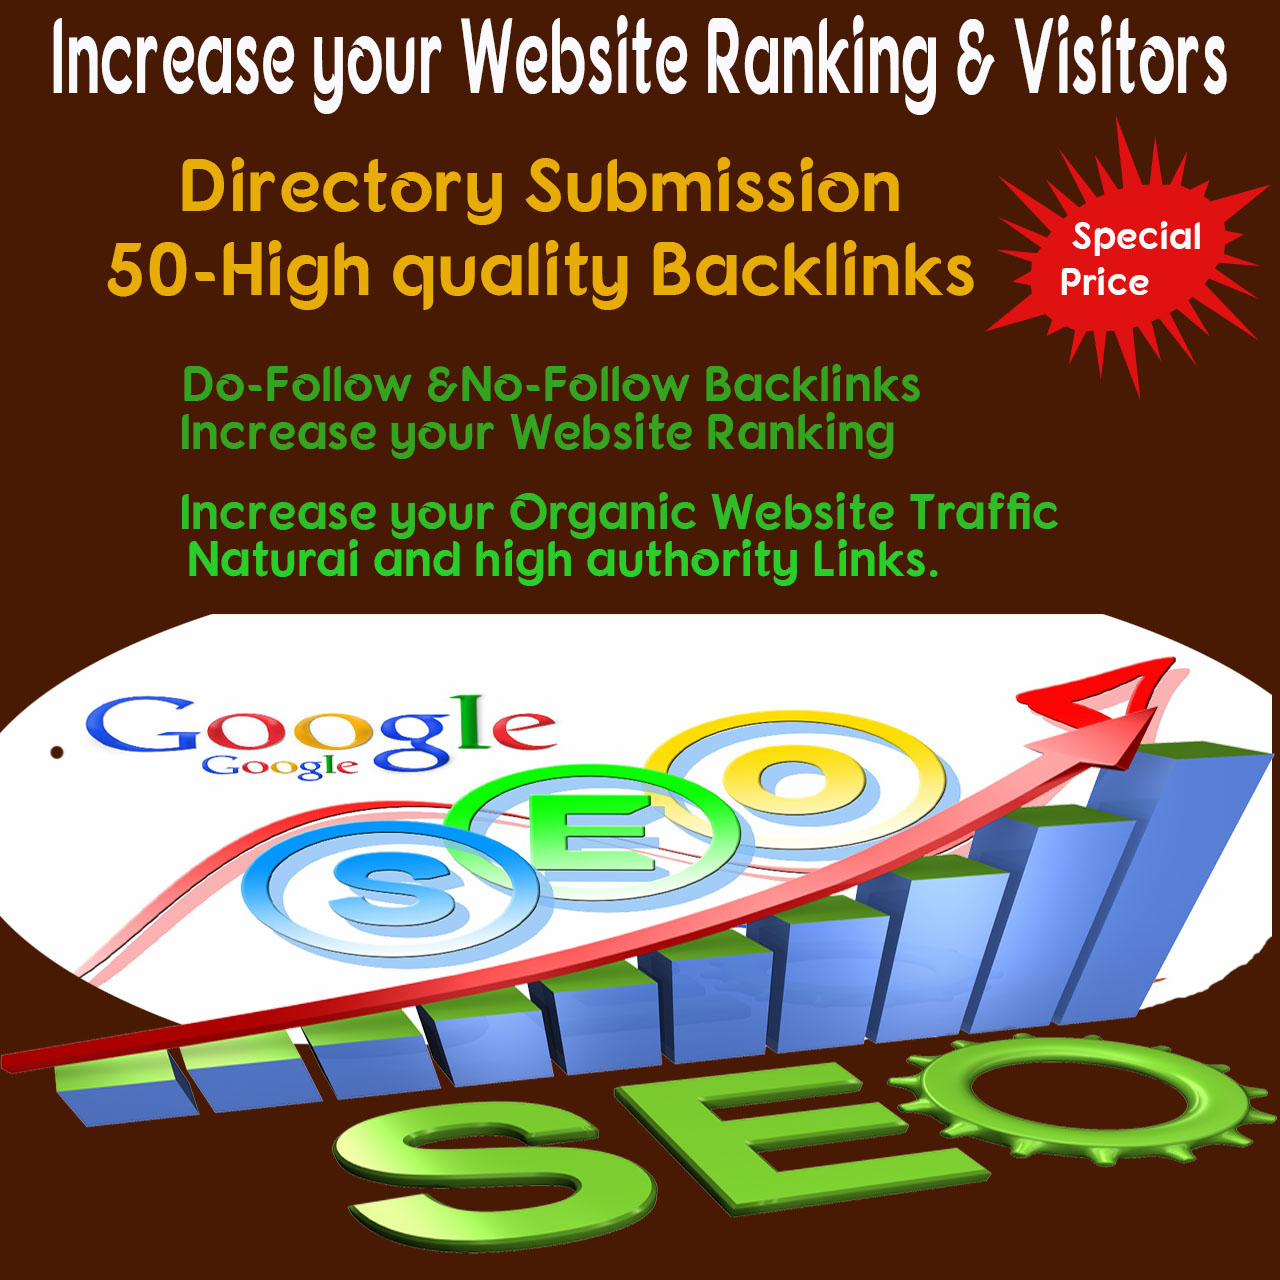 I will create 50 high Authority Backlinks for your Website-helps to boost your Ranking and Visitors